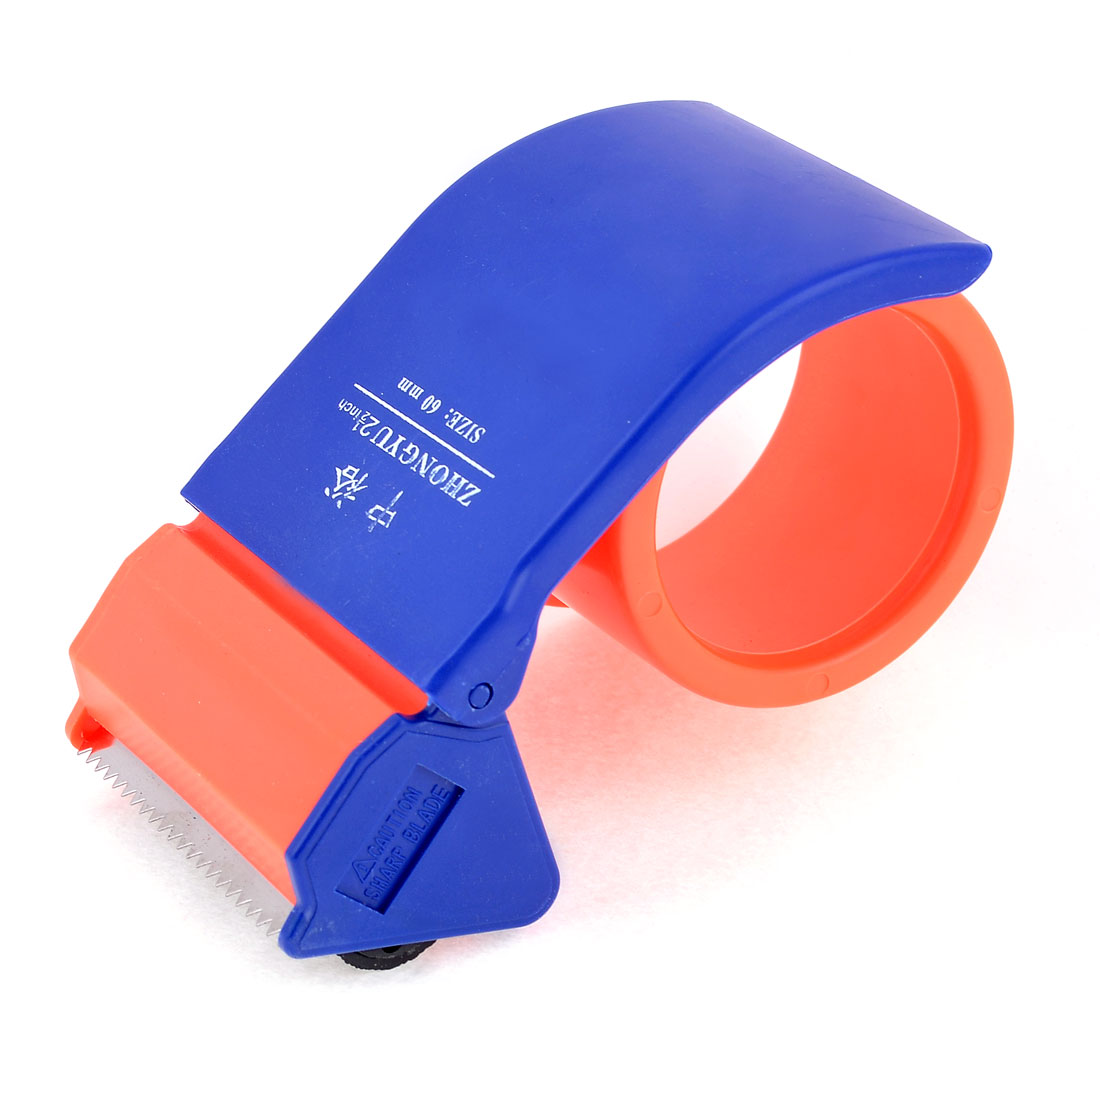 "Handheld Package Tool 2.5"" Adhesive Tape Dispenser Cutter Orange Red Blue"